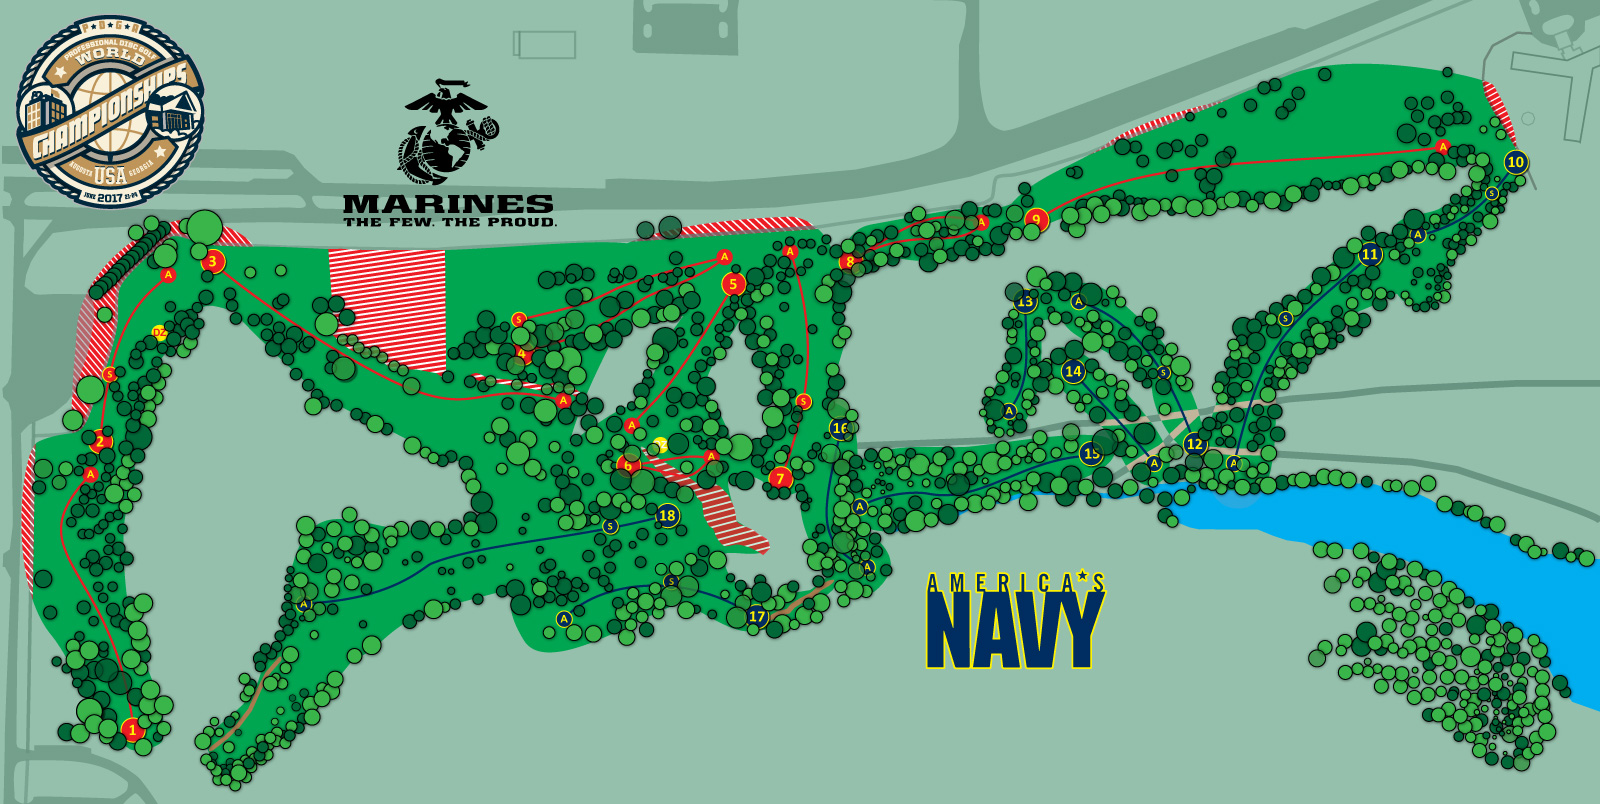 Fort-Gordon-Disc-Golf_Marine-Navy_Pro-World_map.jpg